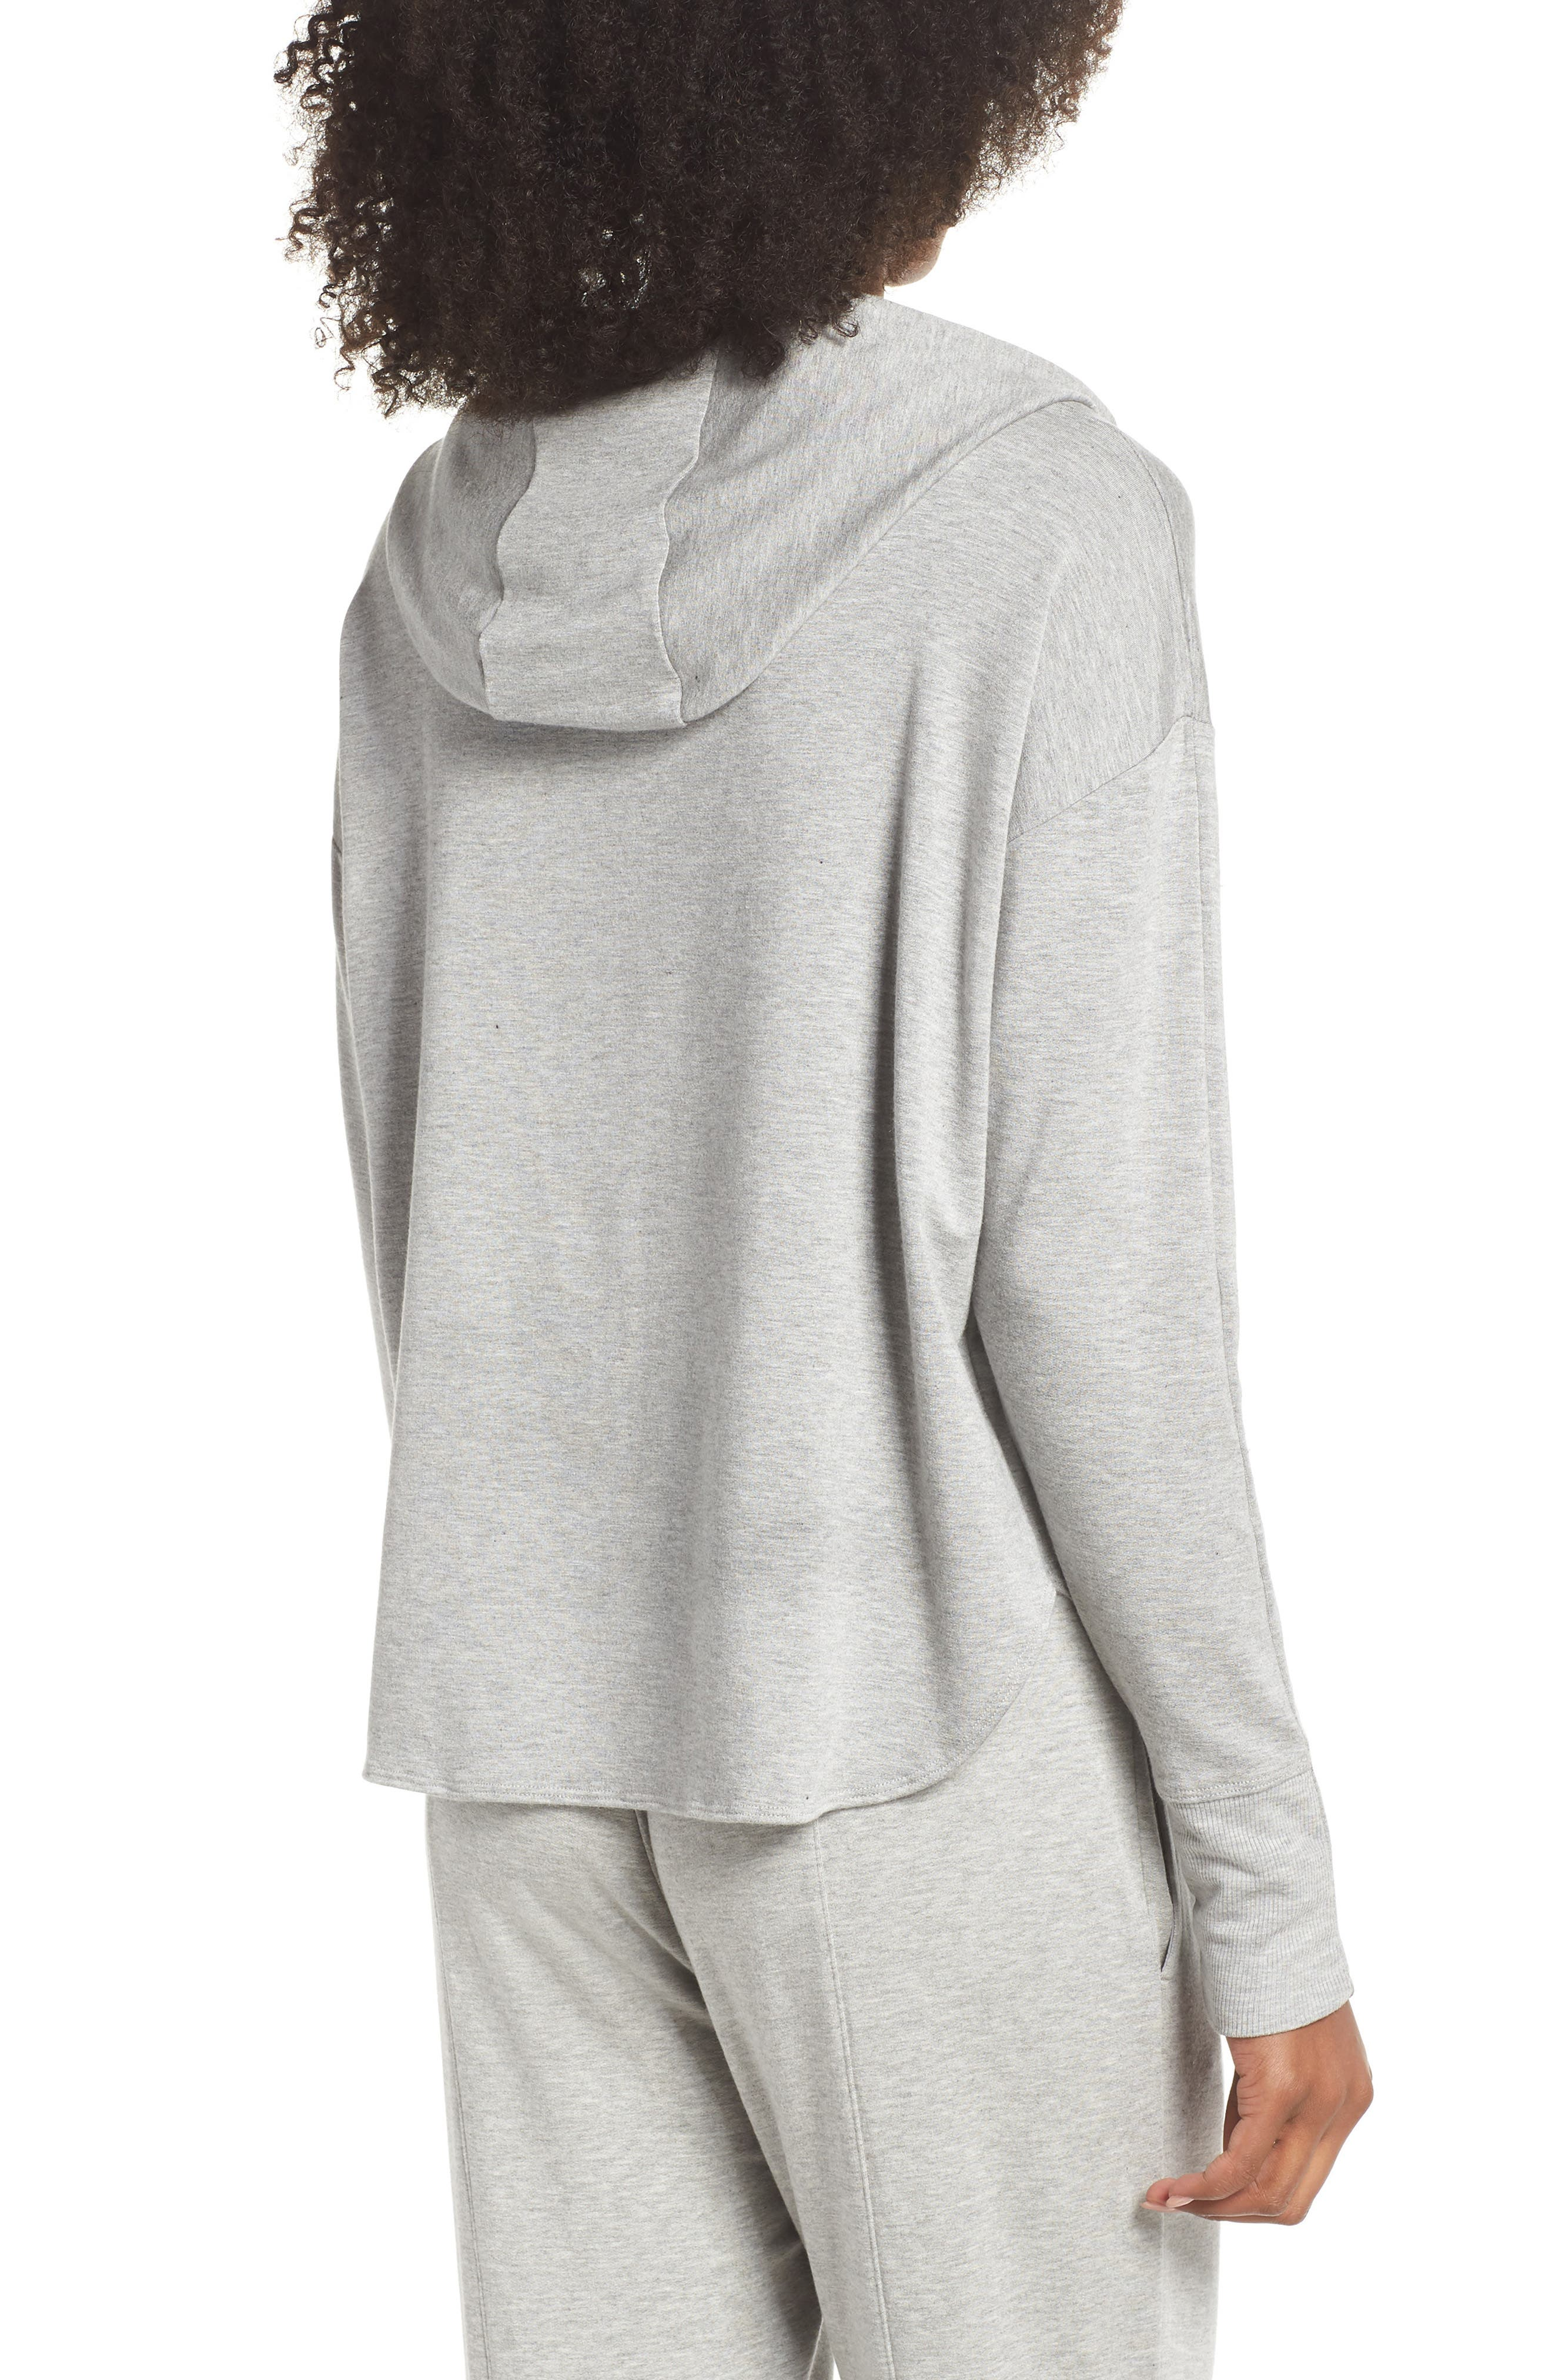 Pacific Hoodie,                             Alternate thumbnail 2, color,                             LIGHT HEATHER GREY